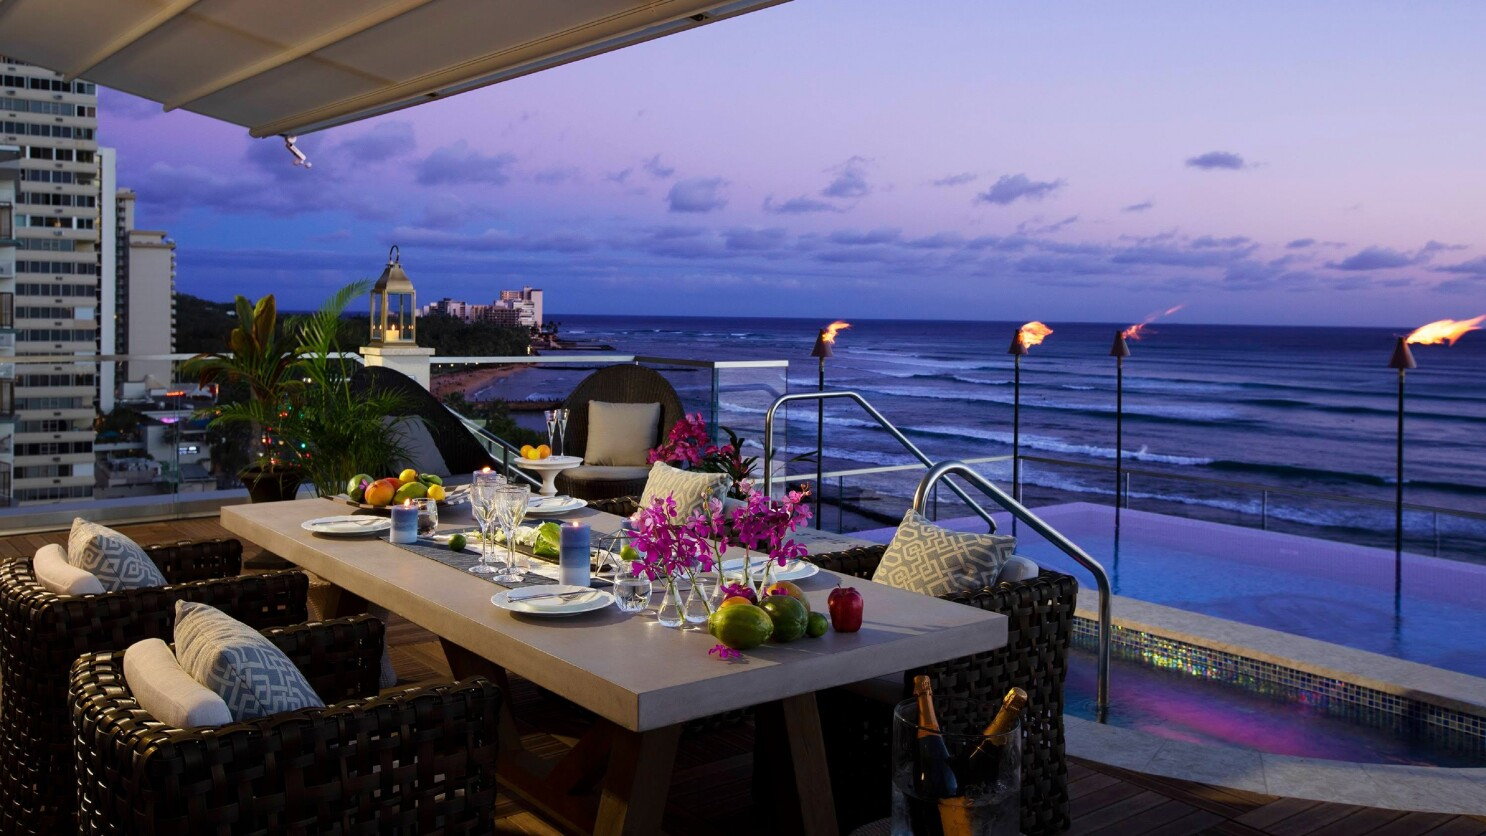 Take a look at Honolulu's $5,000-a-night, game-changing hotel: 9 floors, 9 suites